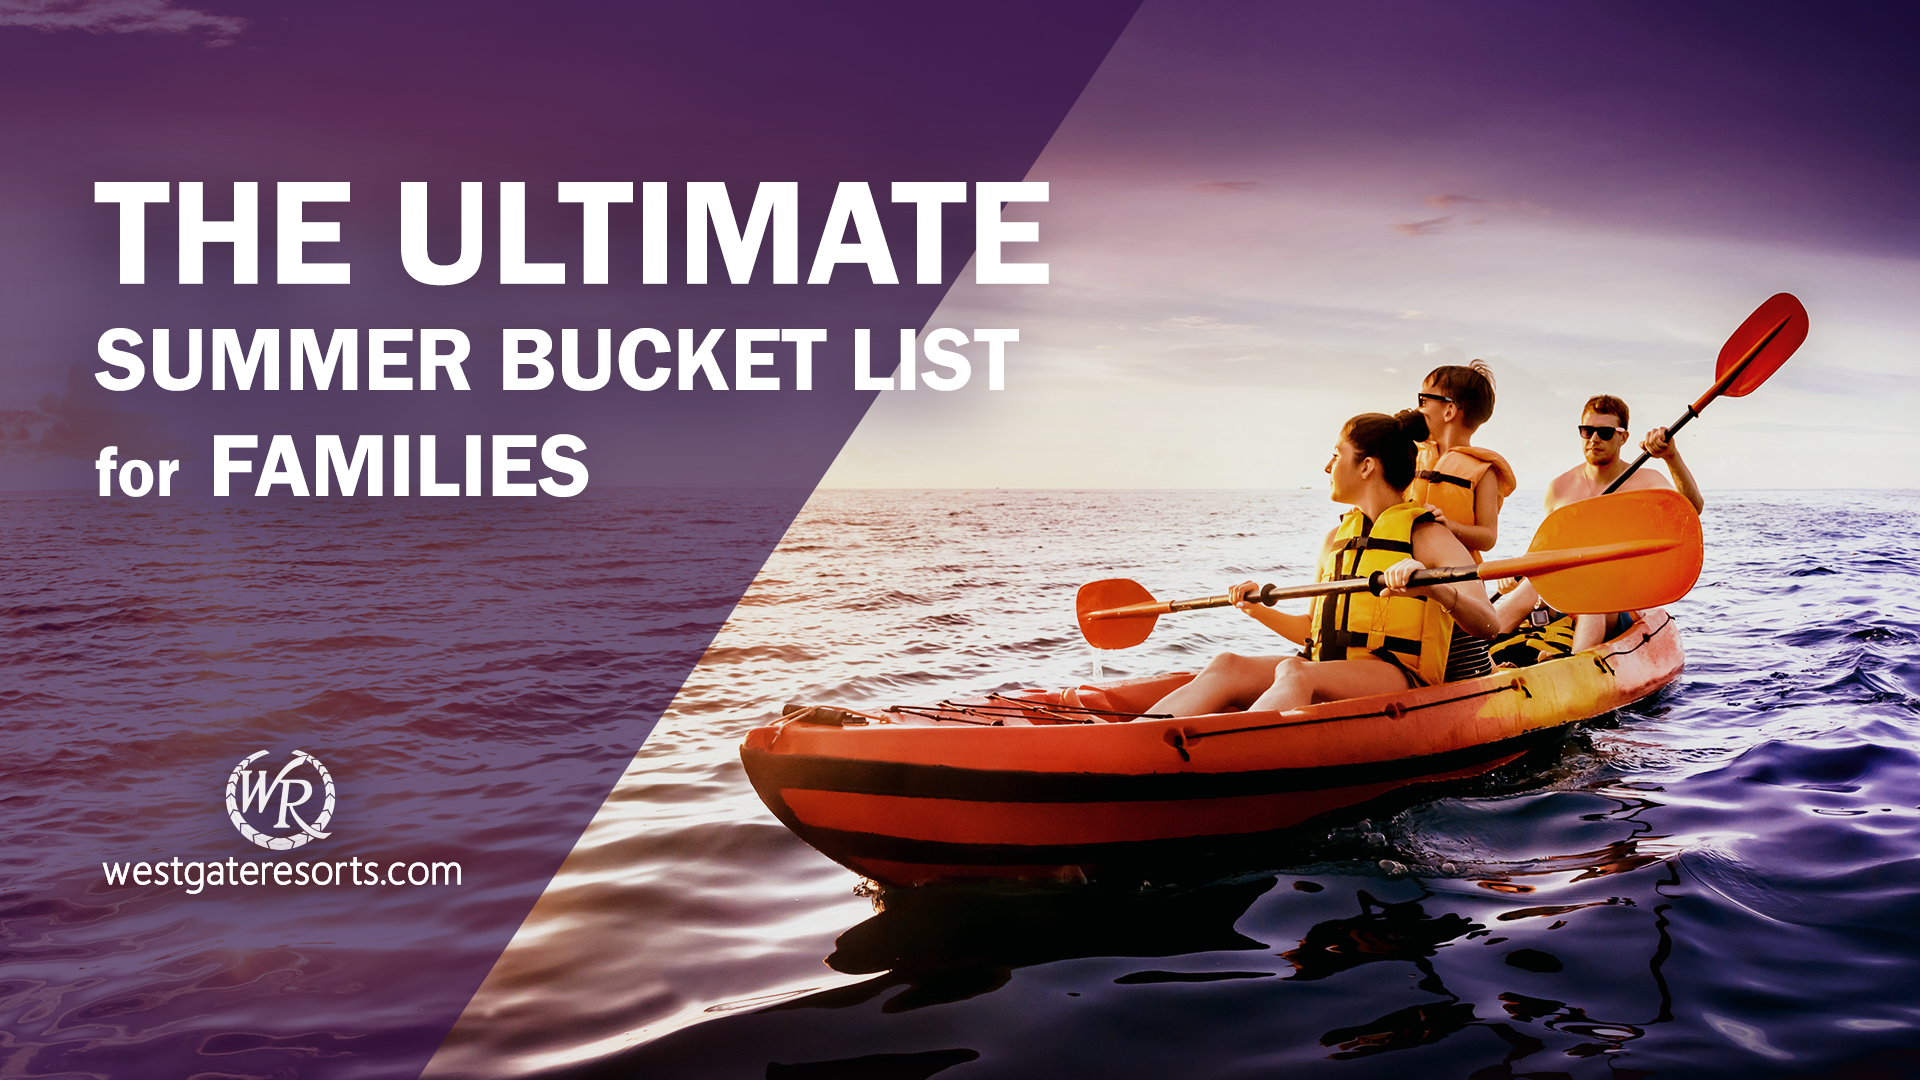 The Ultimate Summer Bucket List for Families | Summer Bucket List Ideas | Westgate Resorts